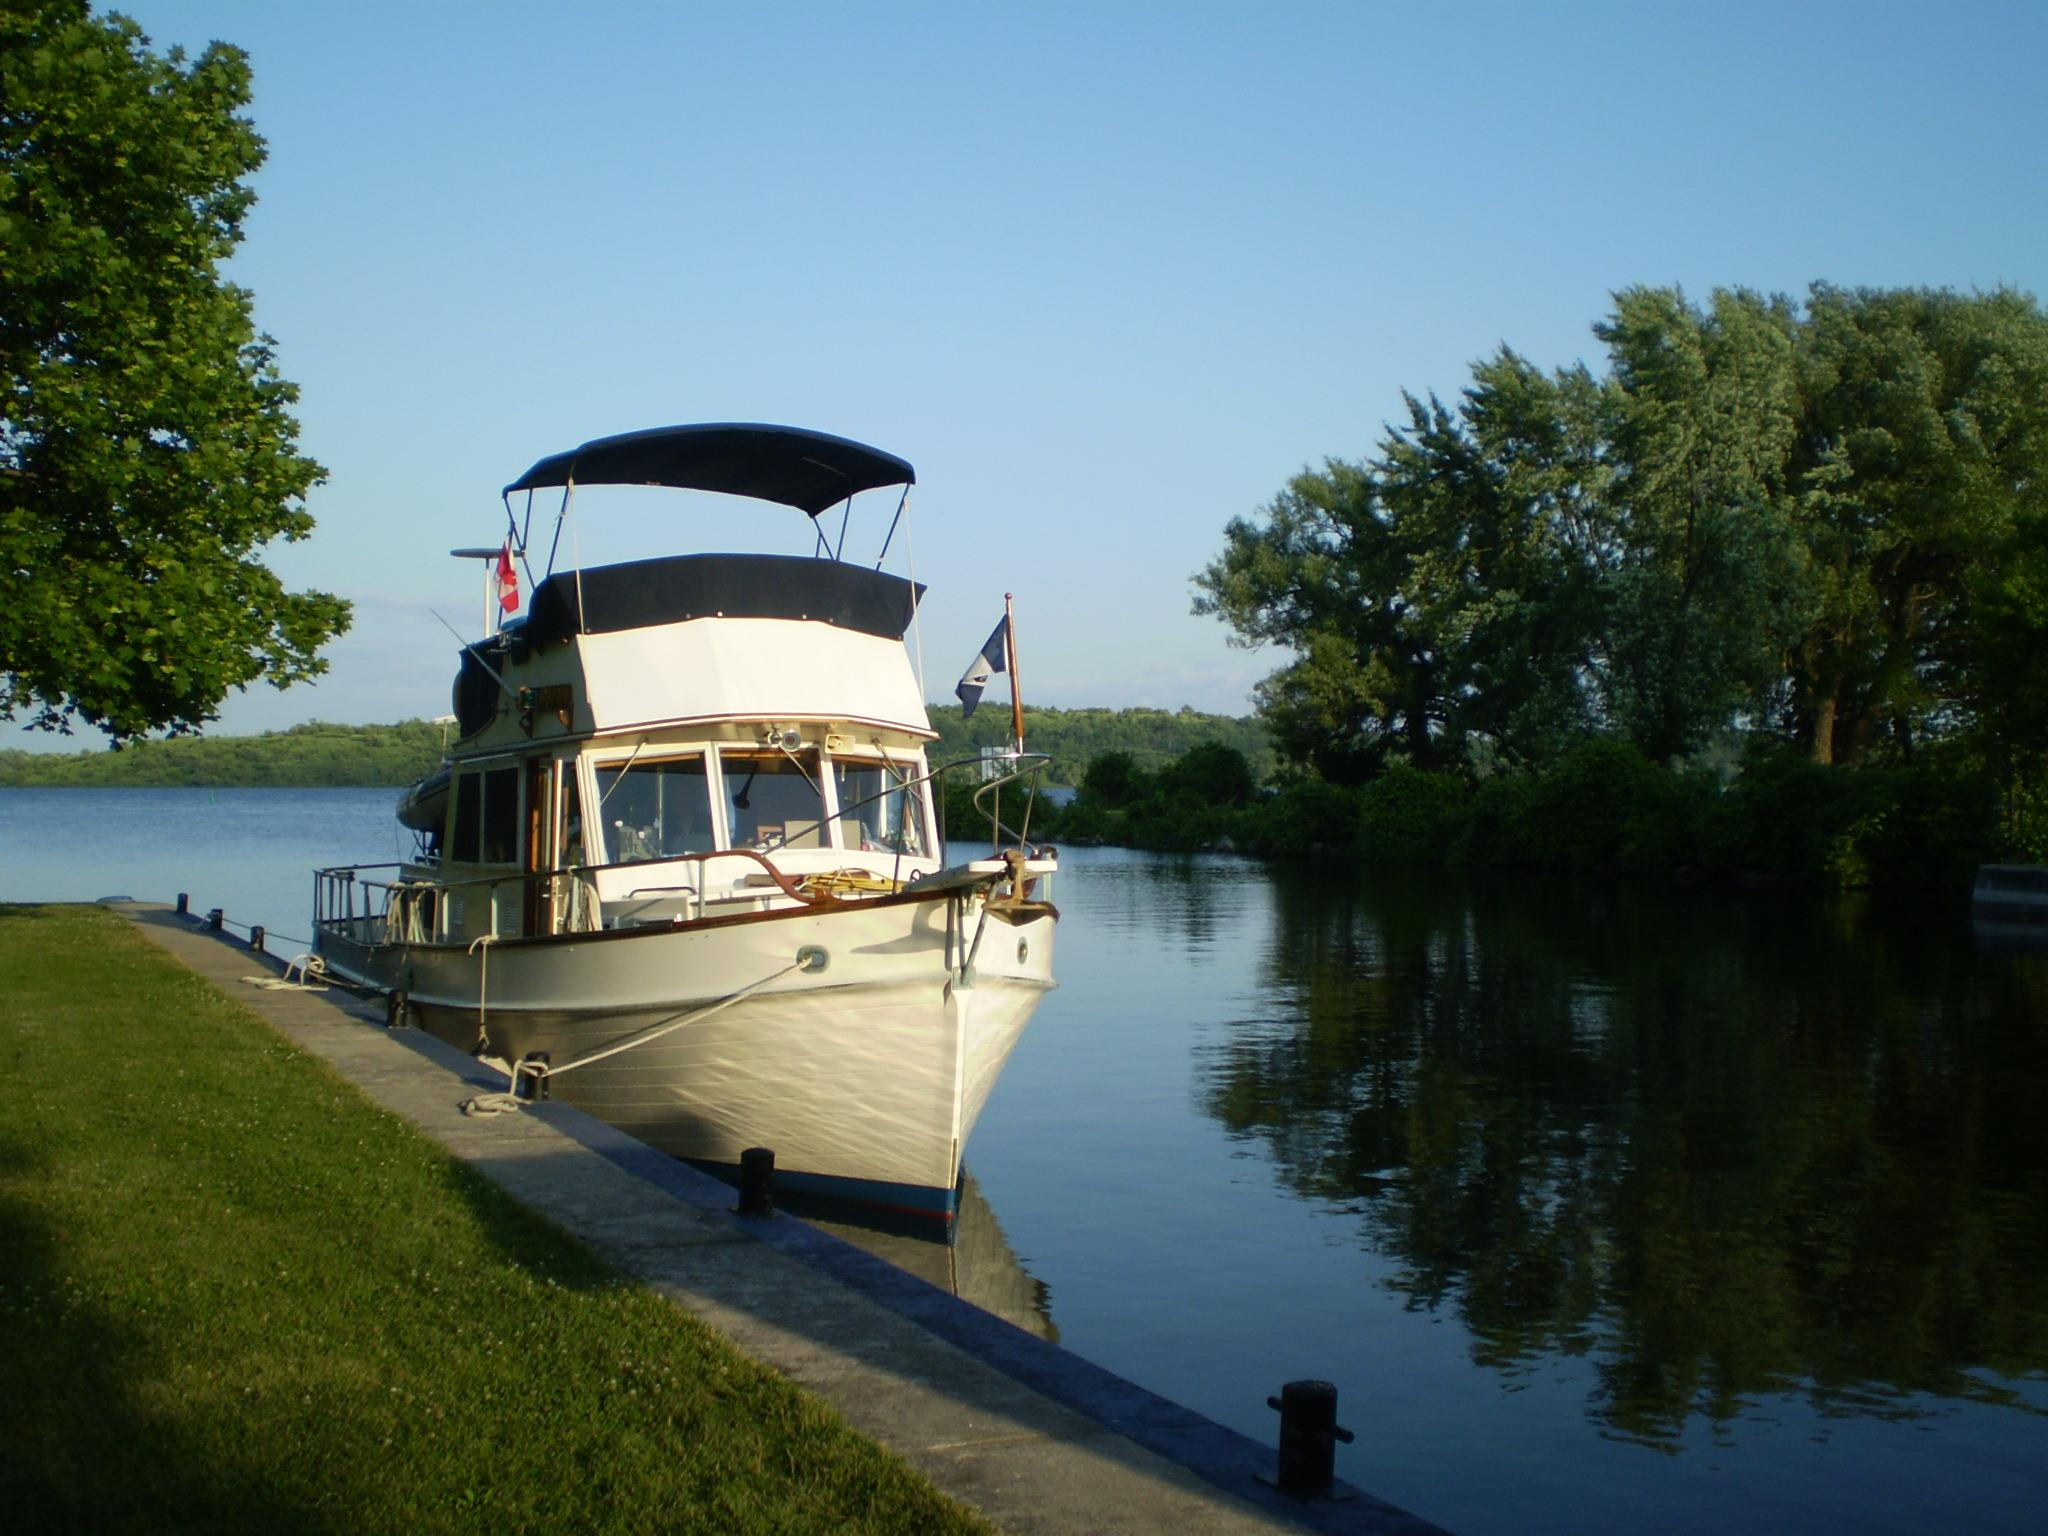 36 ft 1985 grand banks classic with single cat diesel  amp  bow thruster